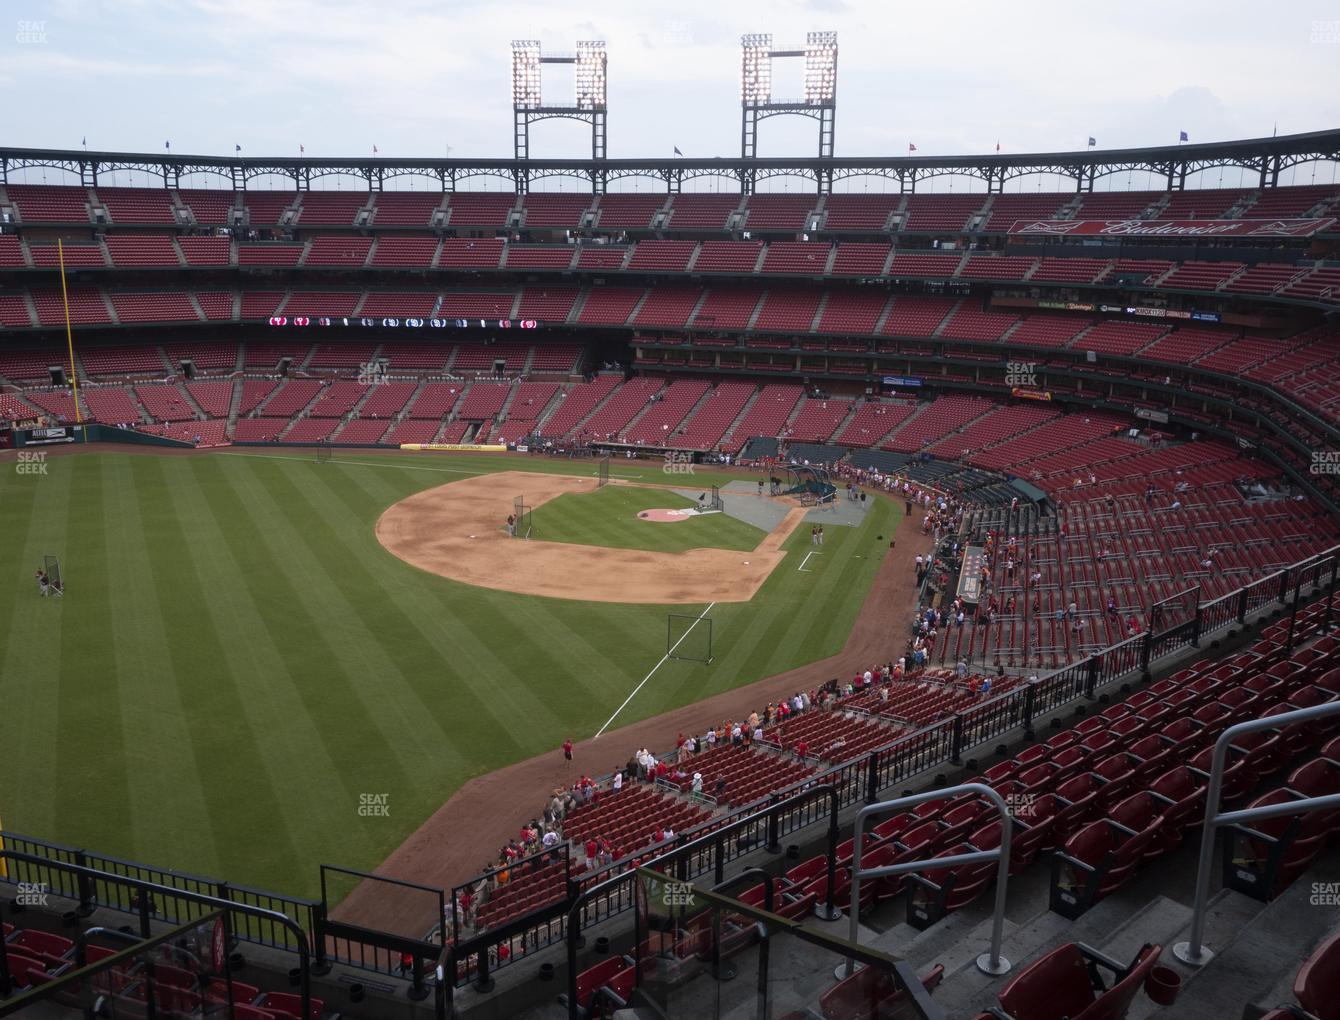 St. Louis Cardinals at Busch Stadium Left Field Pavilion 369 View